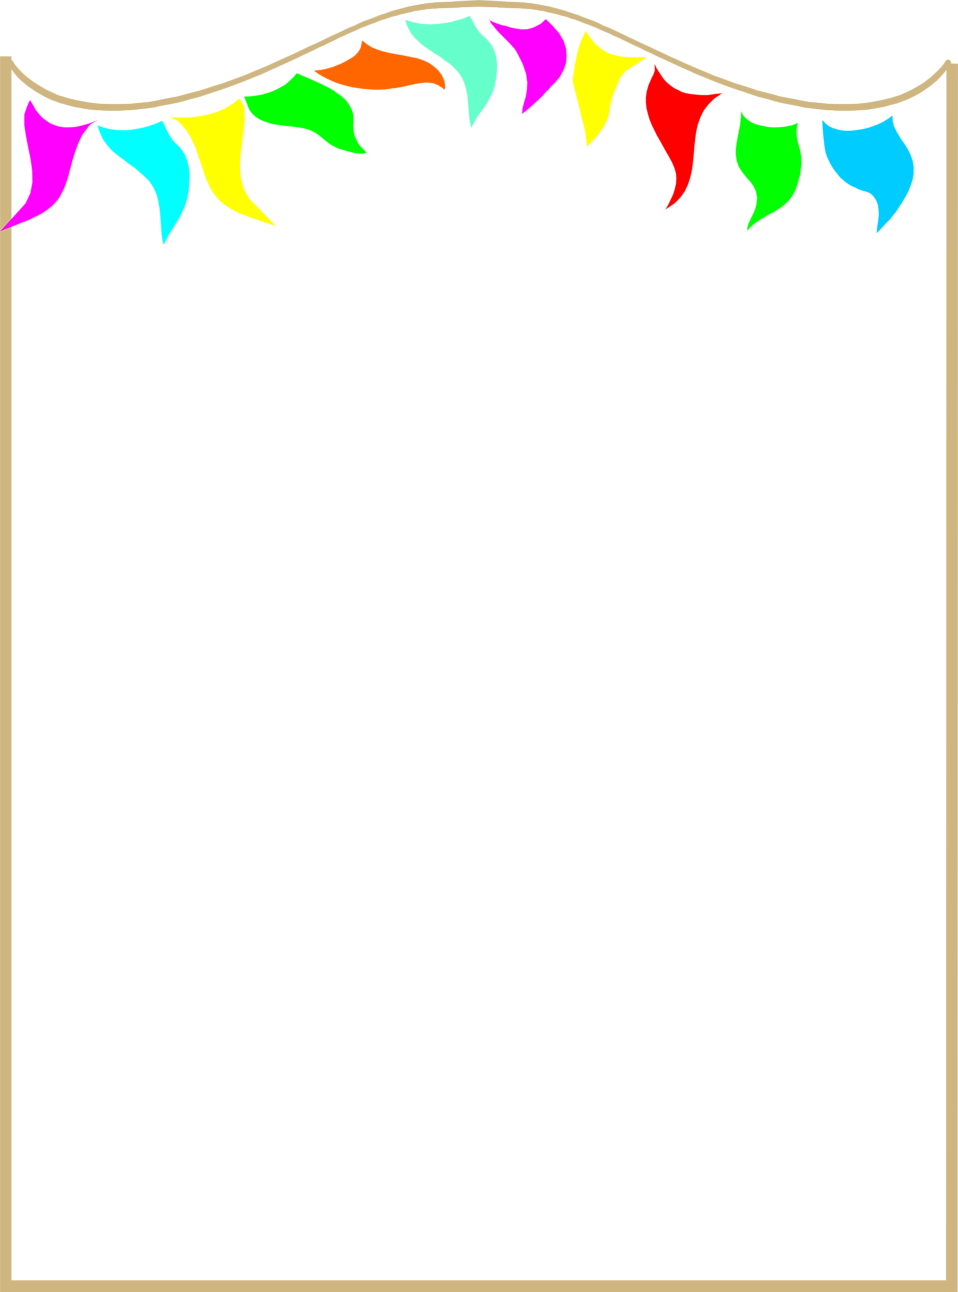 958x1292 Illustration Of A Blank Frame Border With Colorful Pennants Free